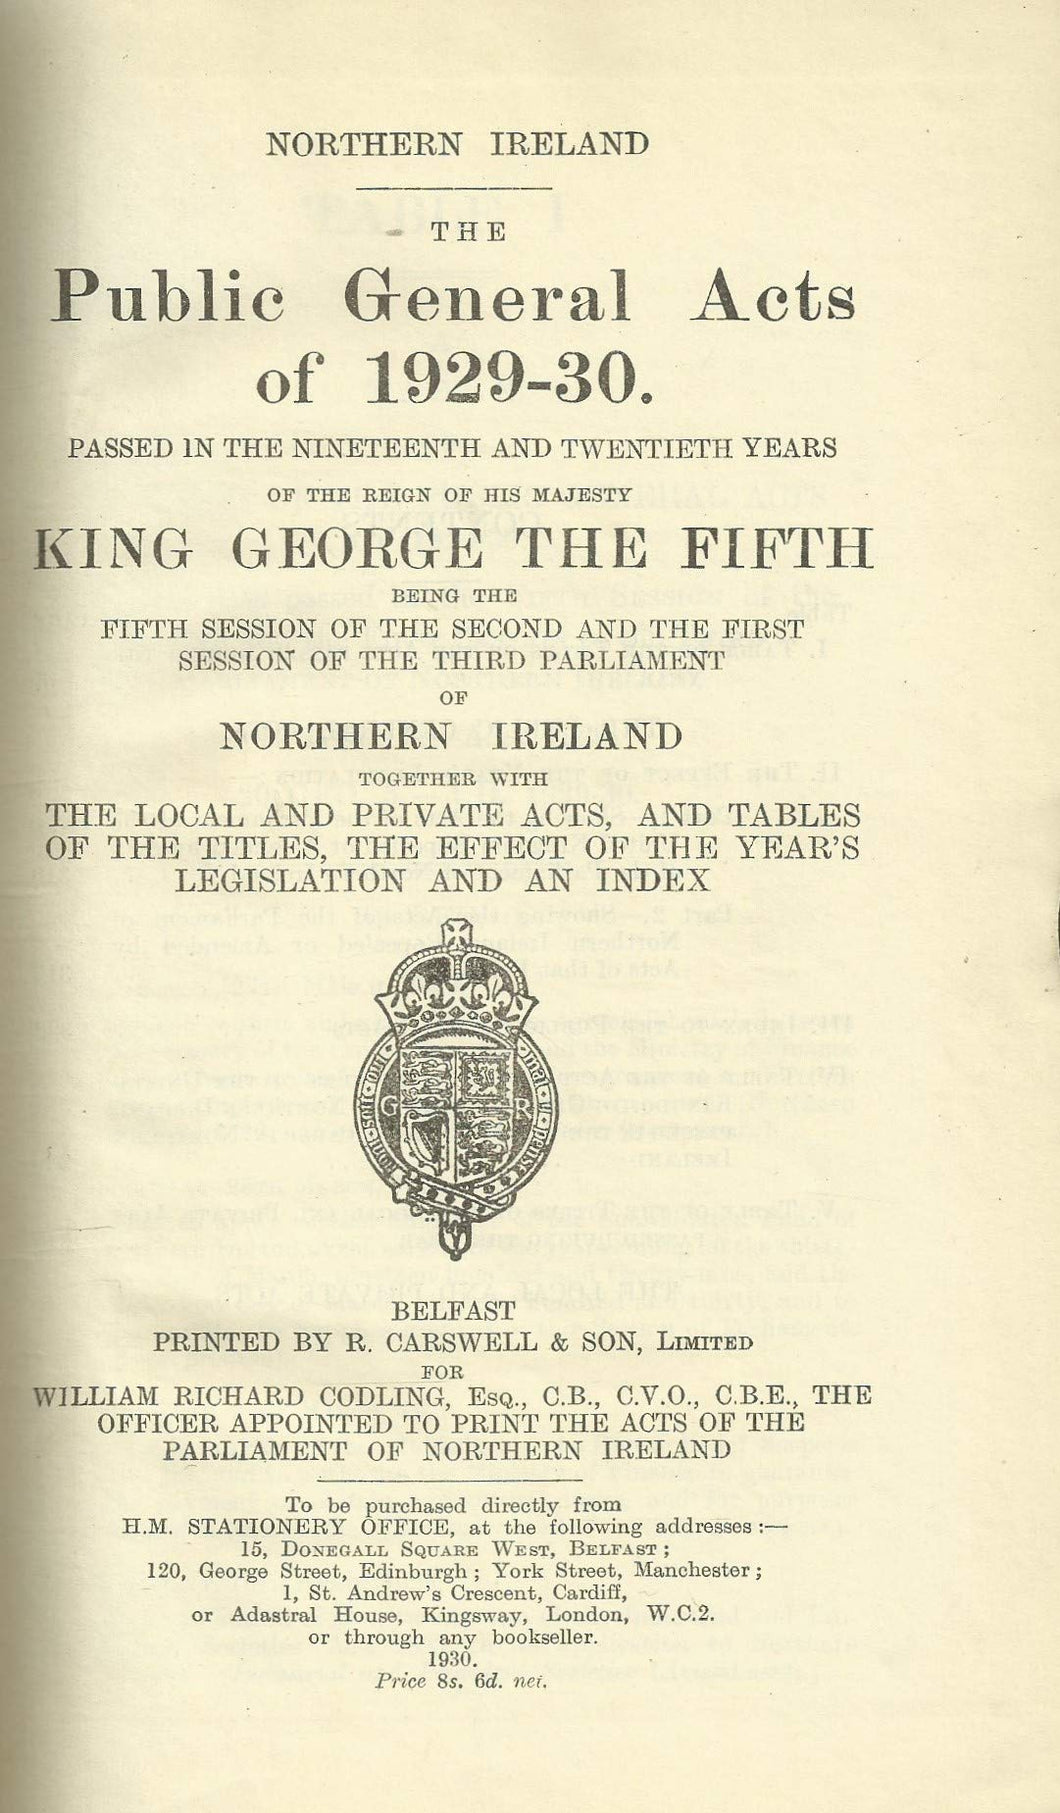 Northern Ireland - The Public General Acts of 1929-30